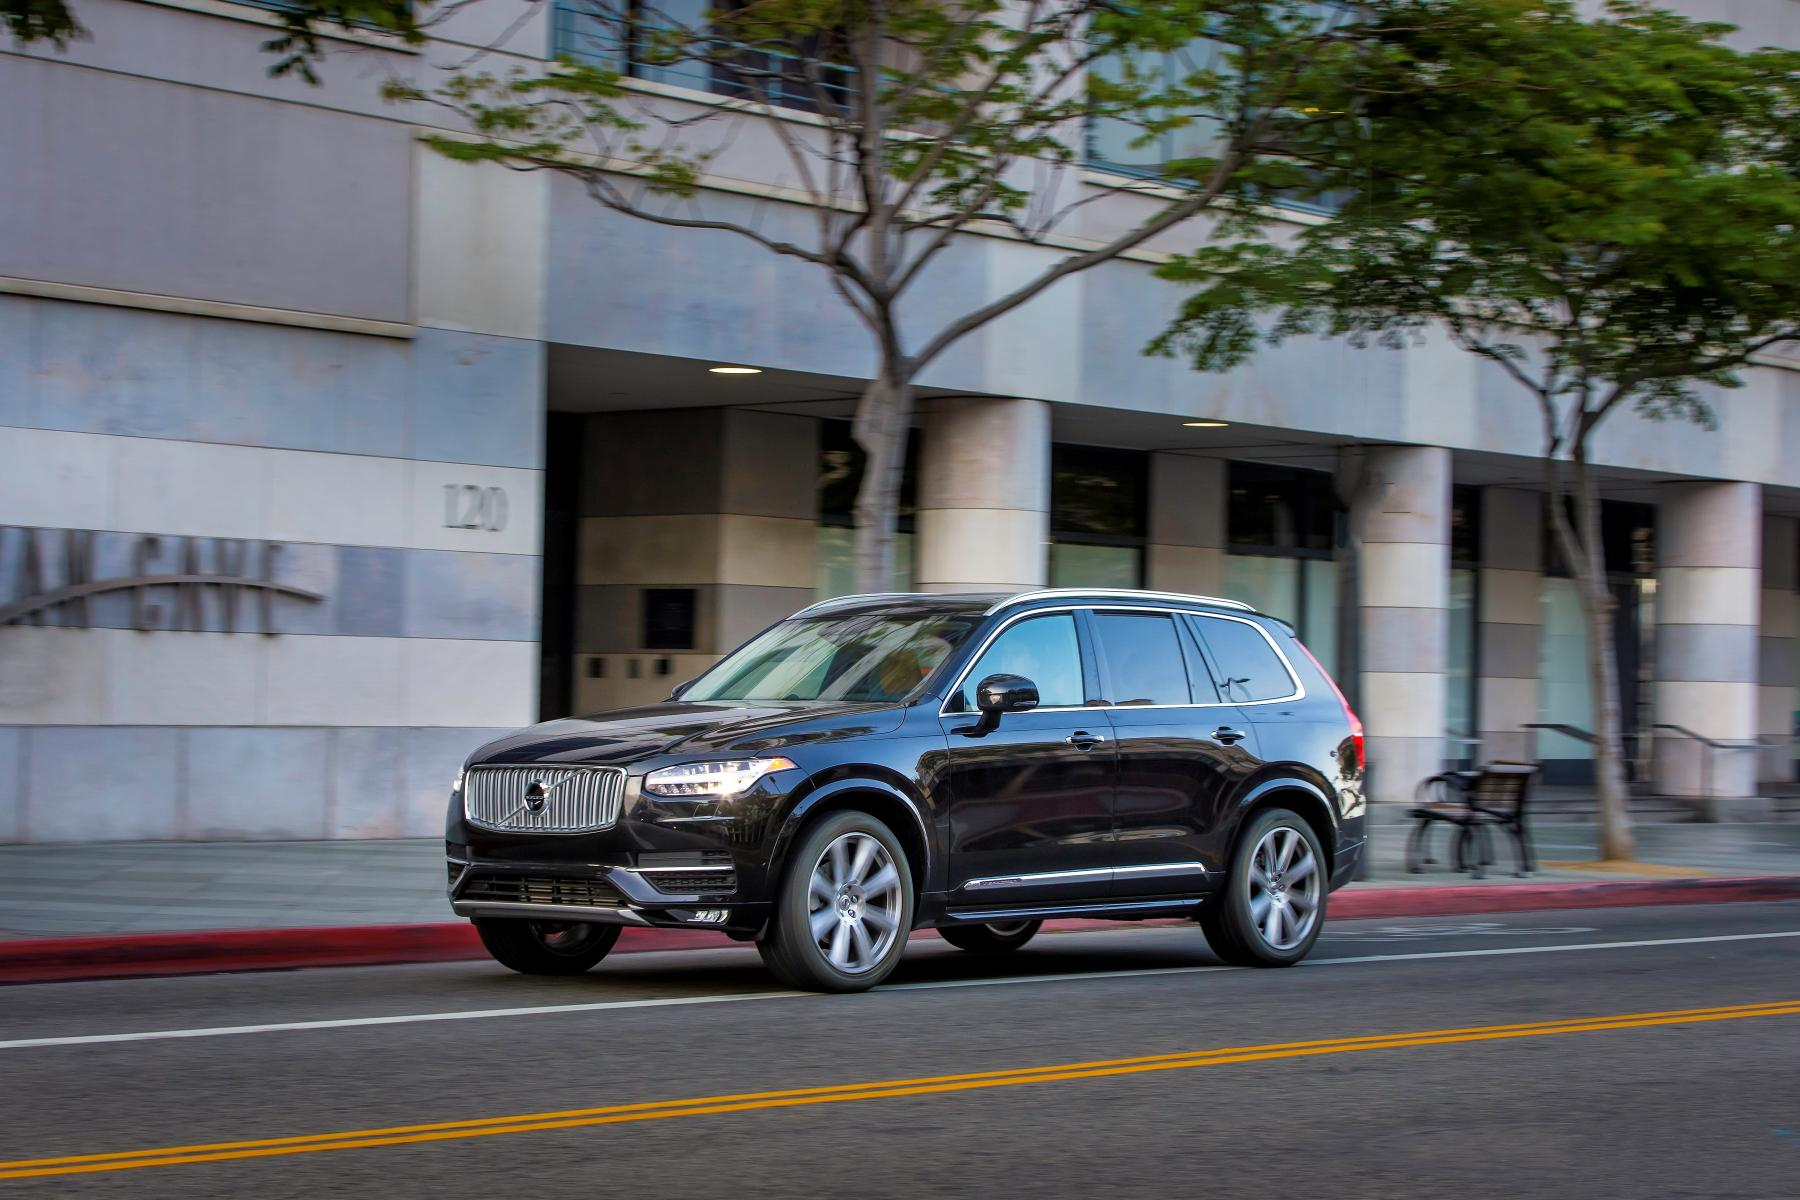 volvo xc90 is euro ncap best in class 2015 4x4 magazine. Black Bedroom Furniture Sets. Home Design Ideas